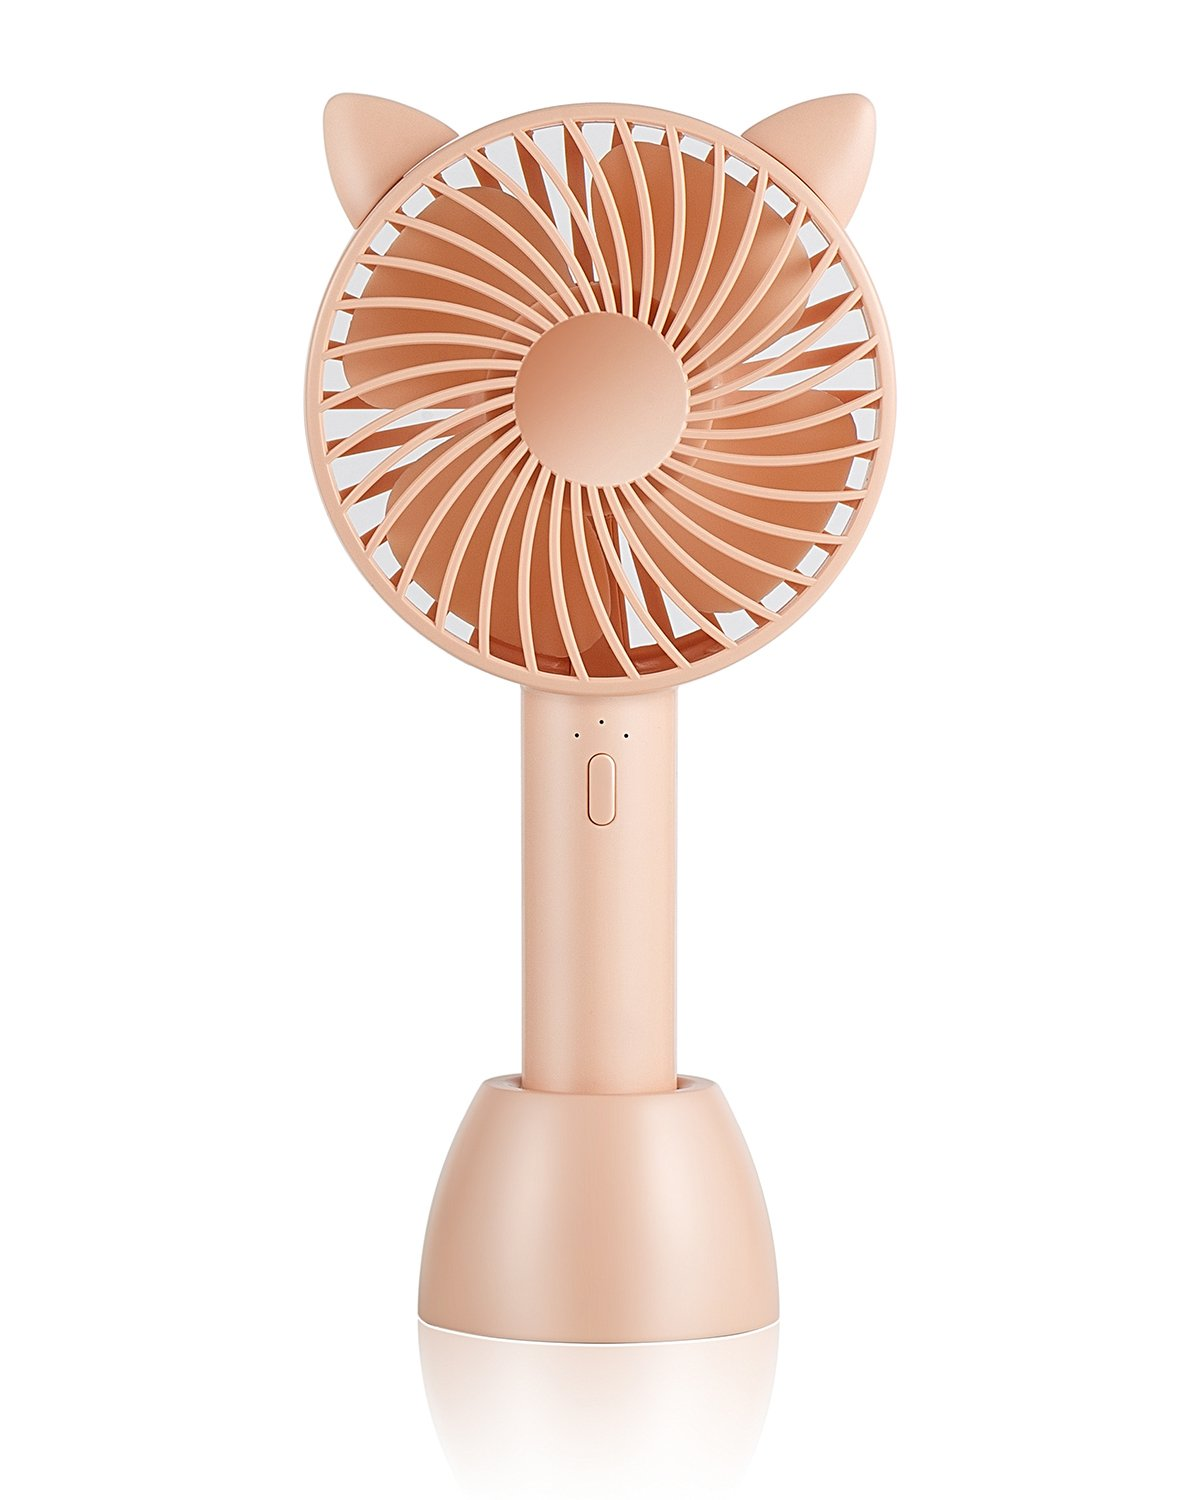 SUPOLOGY Mini Portable Fan, Rechargeable USB Twin Turbo Blades Adjustable with 3 Speed Handheld Table Desktop Fan for Home Office Outdoor Travel (Pink) MiNi Fan 003